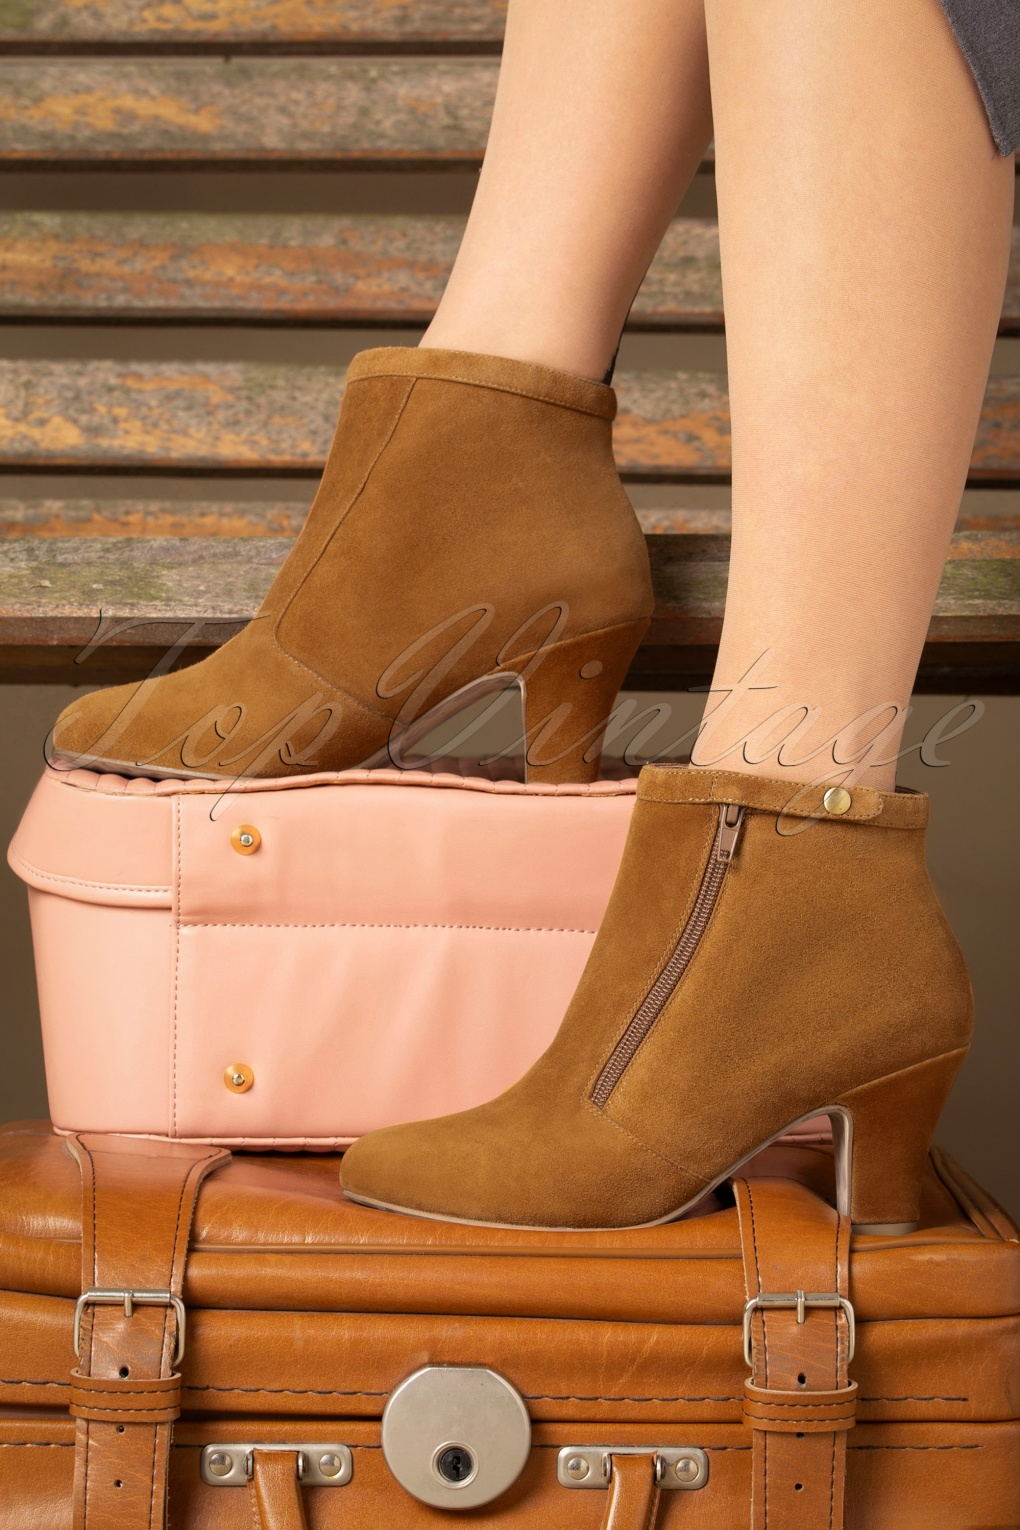 Vintage Boots- Buy Winter Retro Boots 40s Ava Return To Sender Booties in Cognac £120.74 AT vintagedancer.com